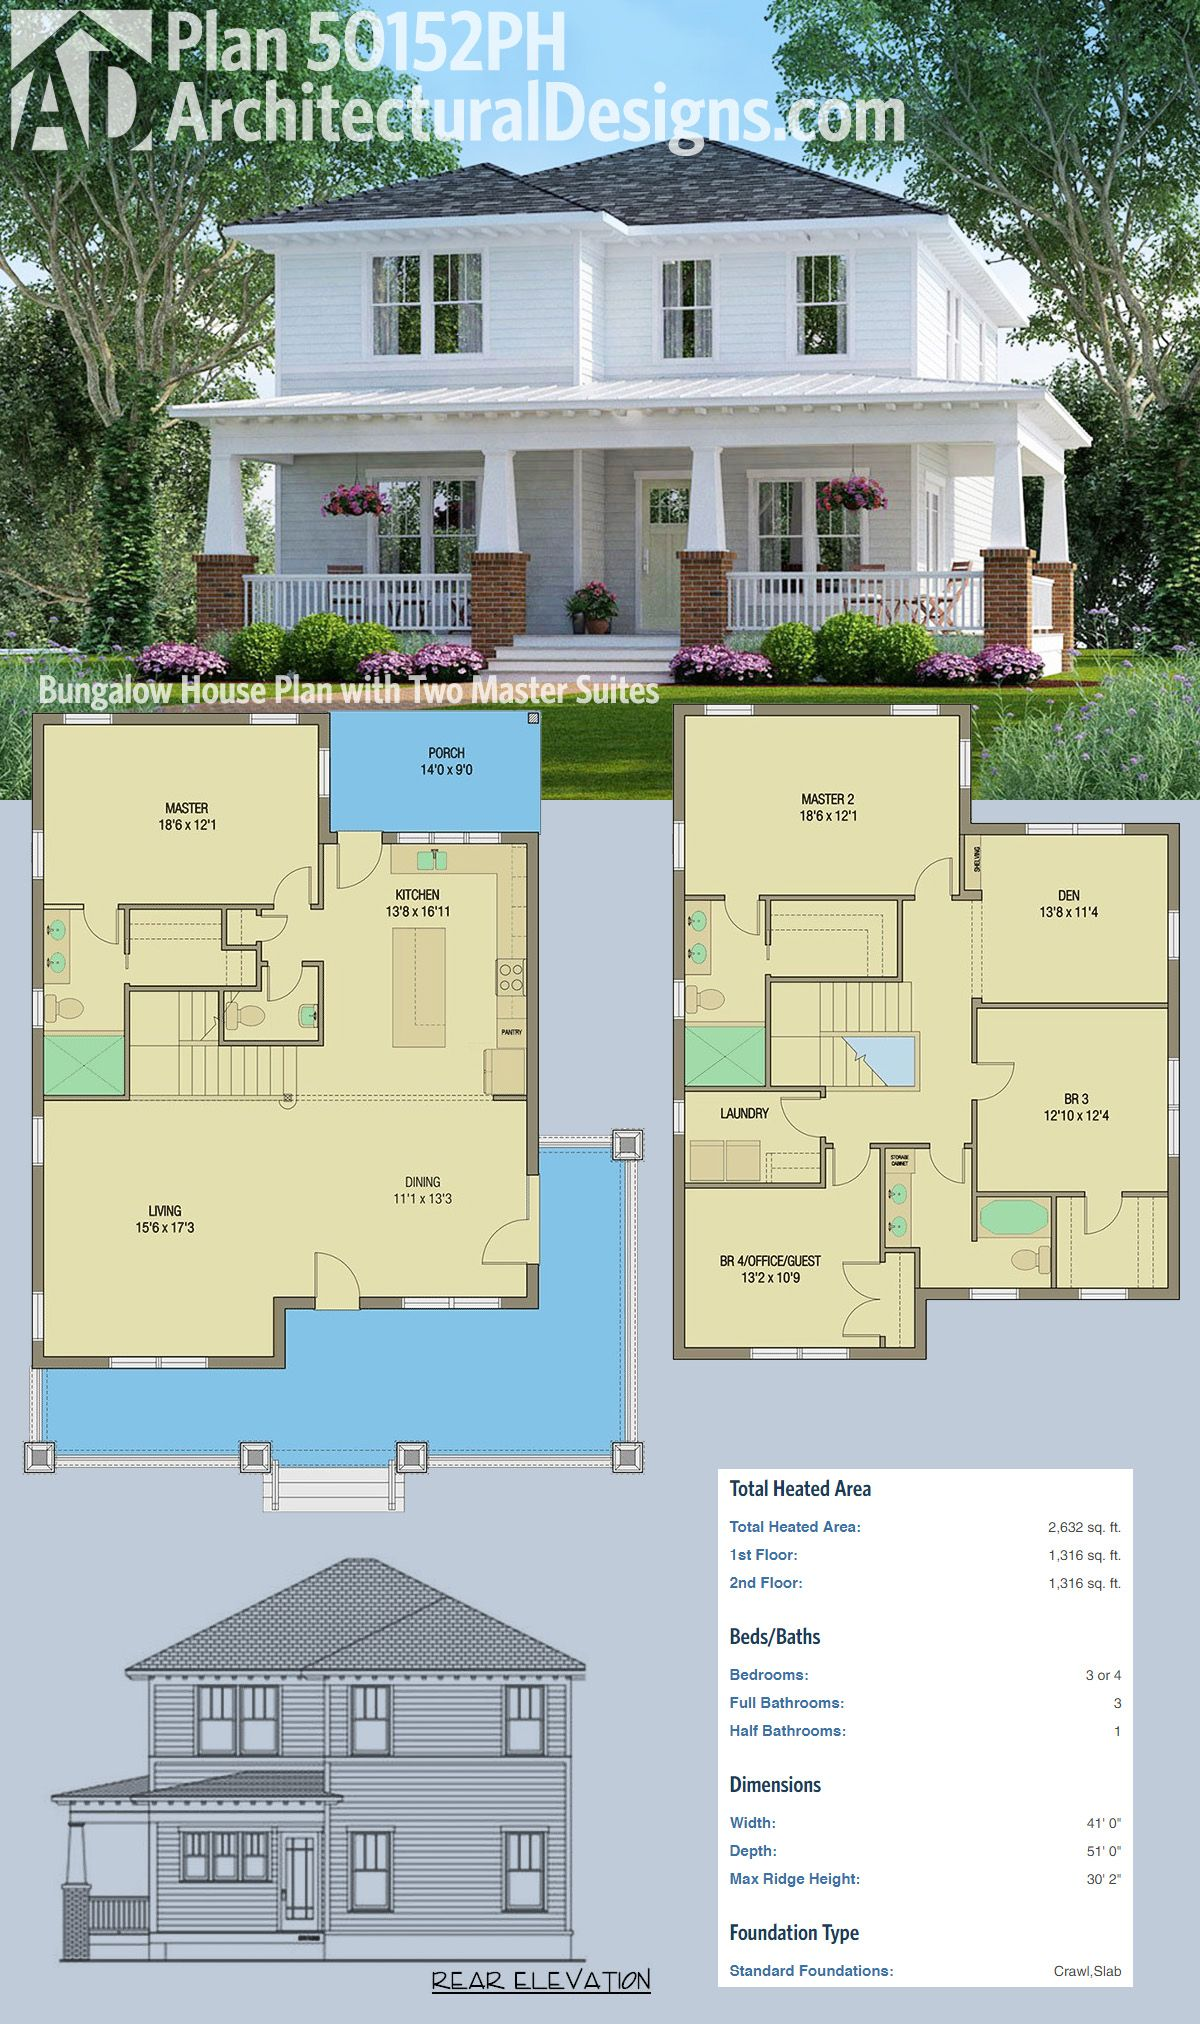 Plan 50152ph Bungalow House Plan With Two Master Suites Floor